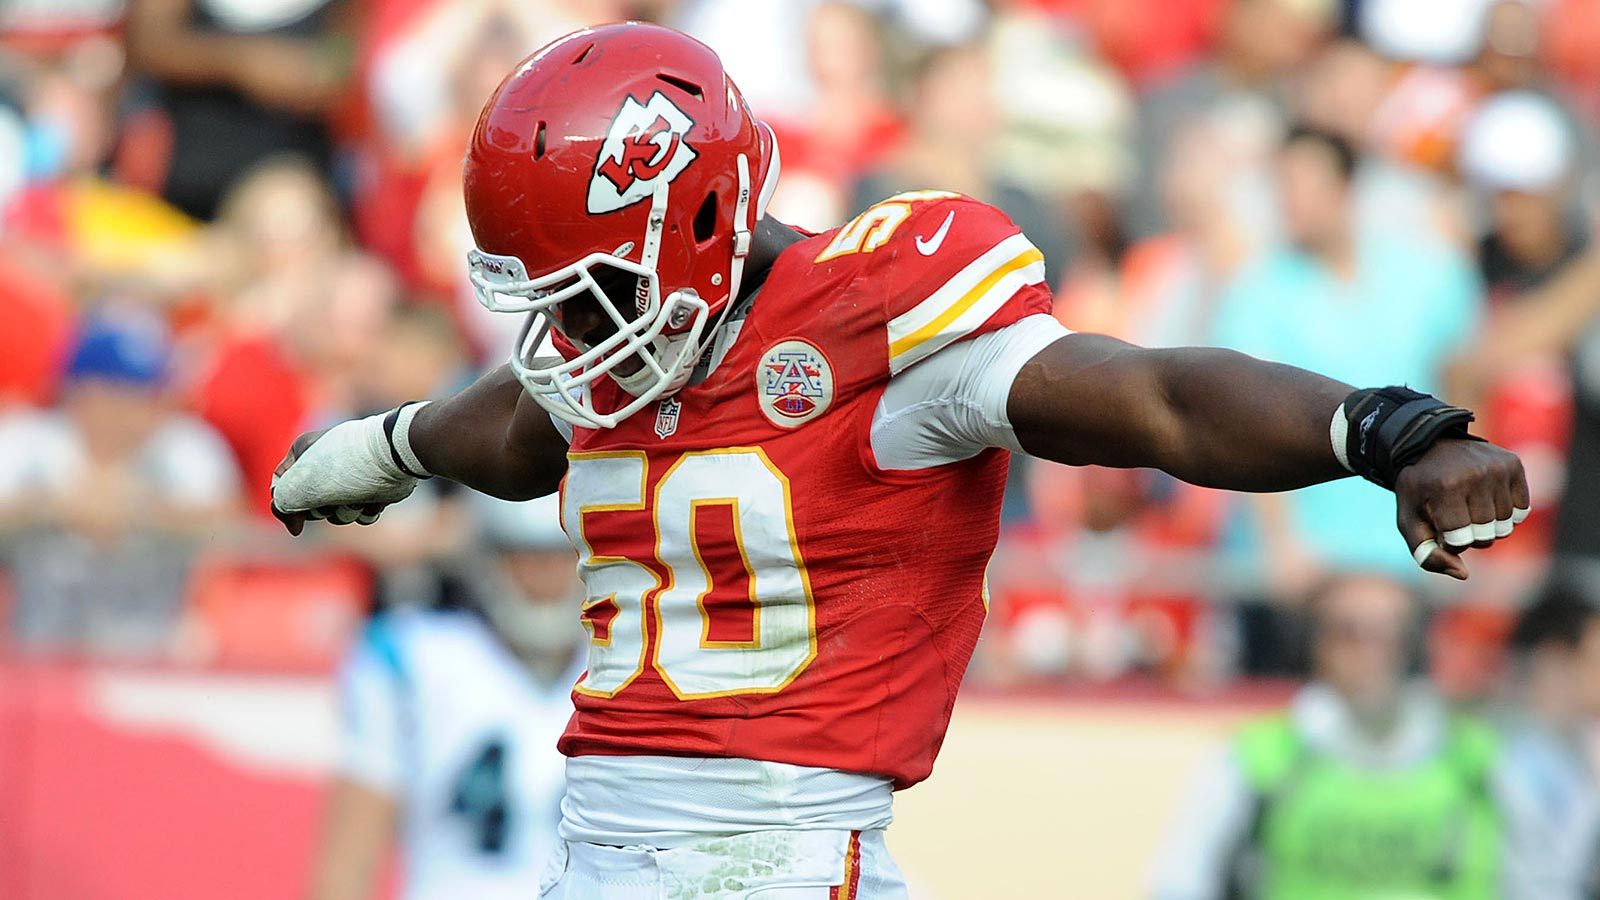 There is always next year for Justin Houston to sign a new contract